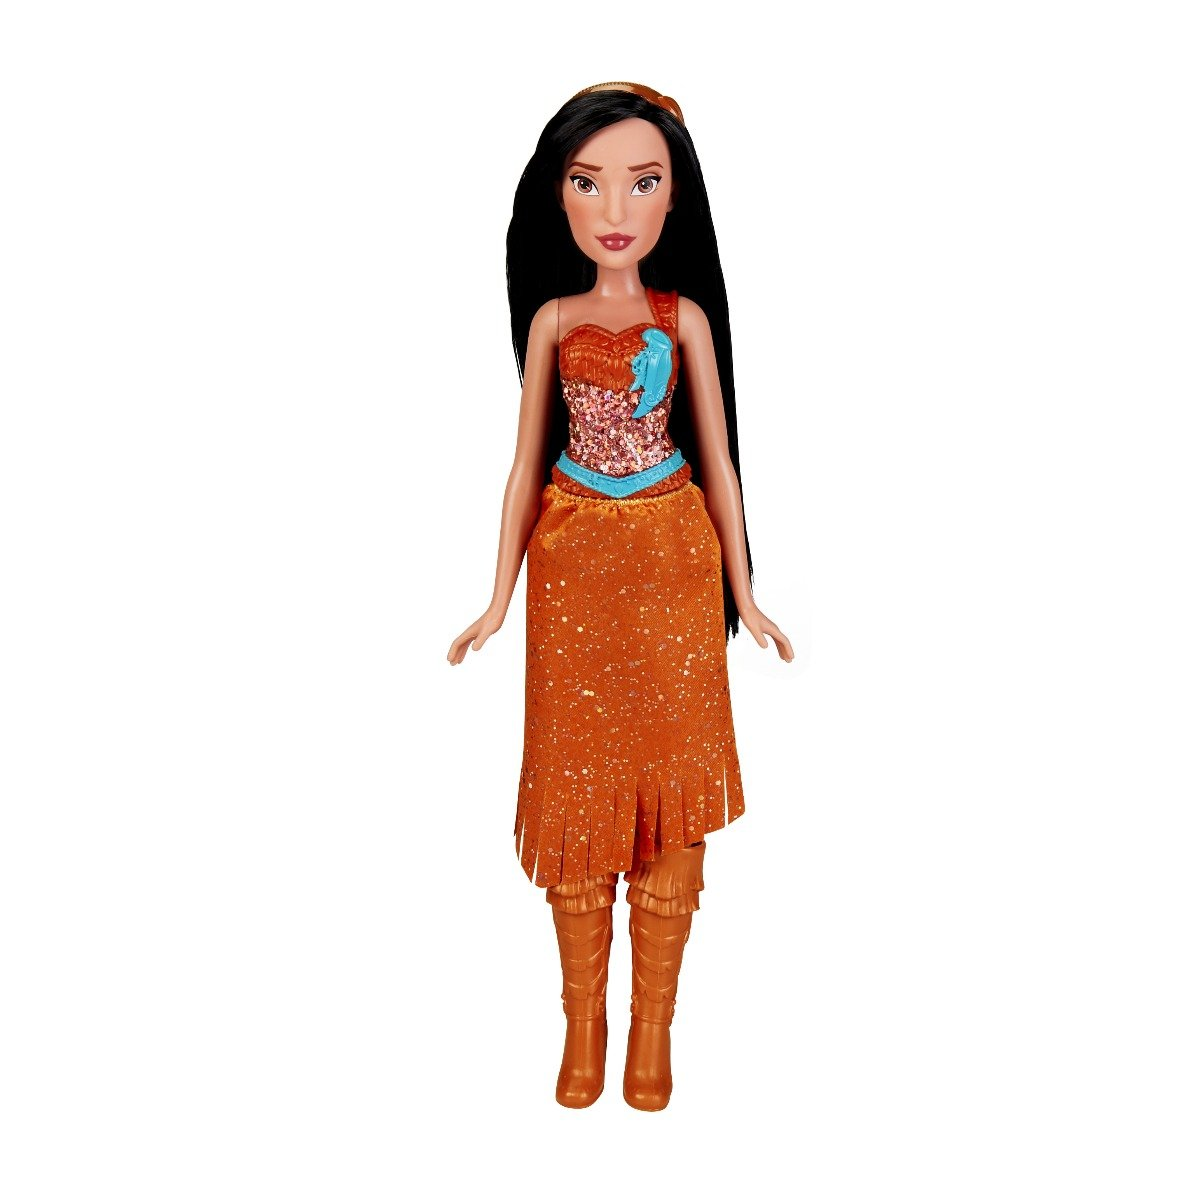 Papusa Disney Princess - Shimmer Fashion - Pocahontas